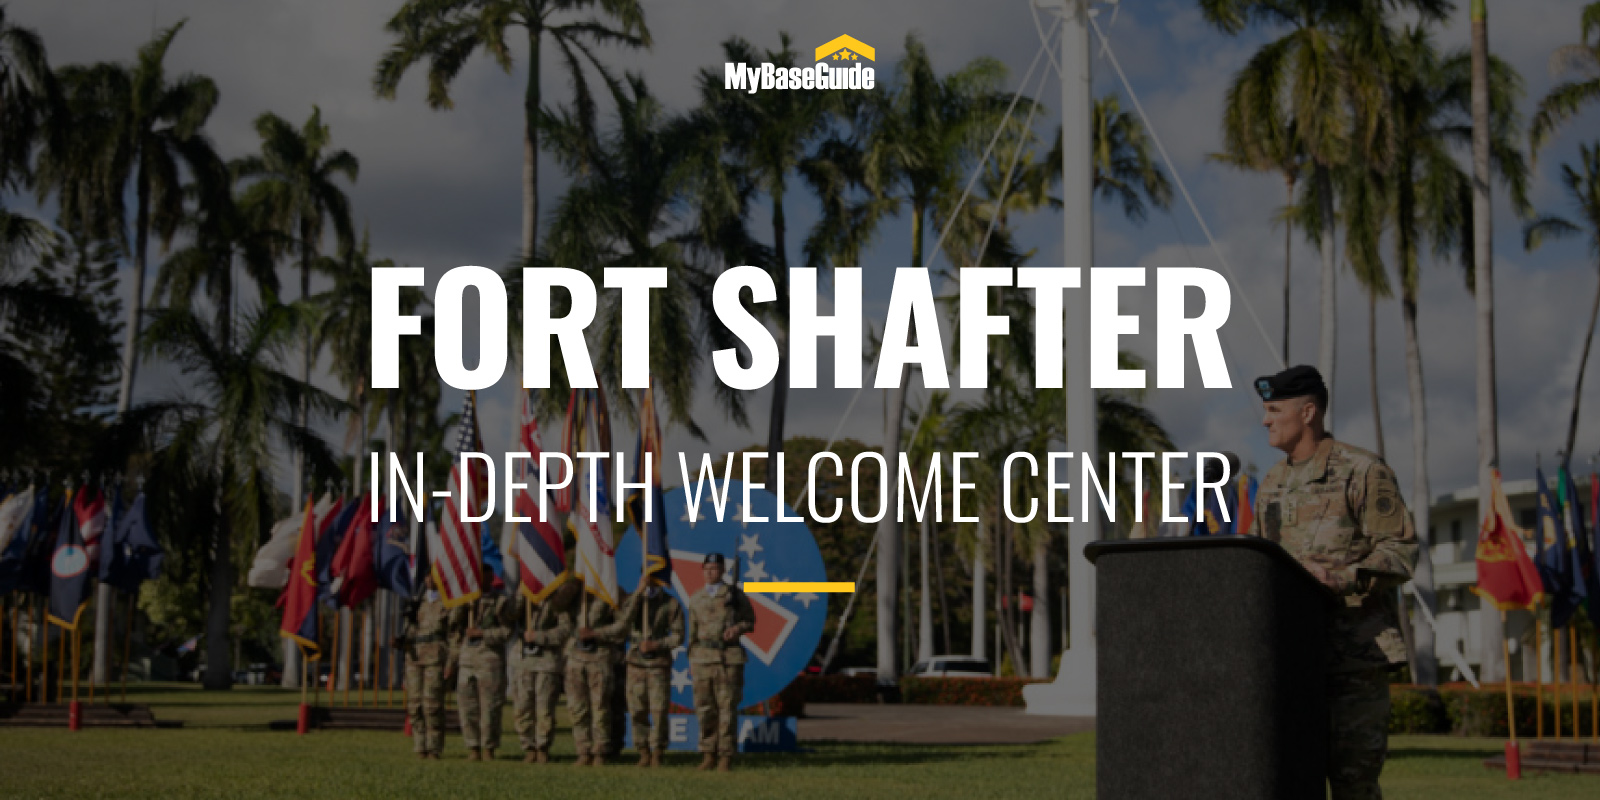 Fort Shafter: In-Depth Welcome Center